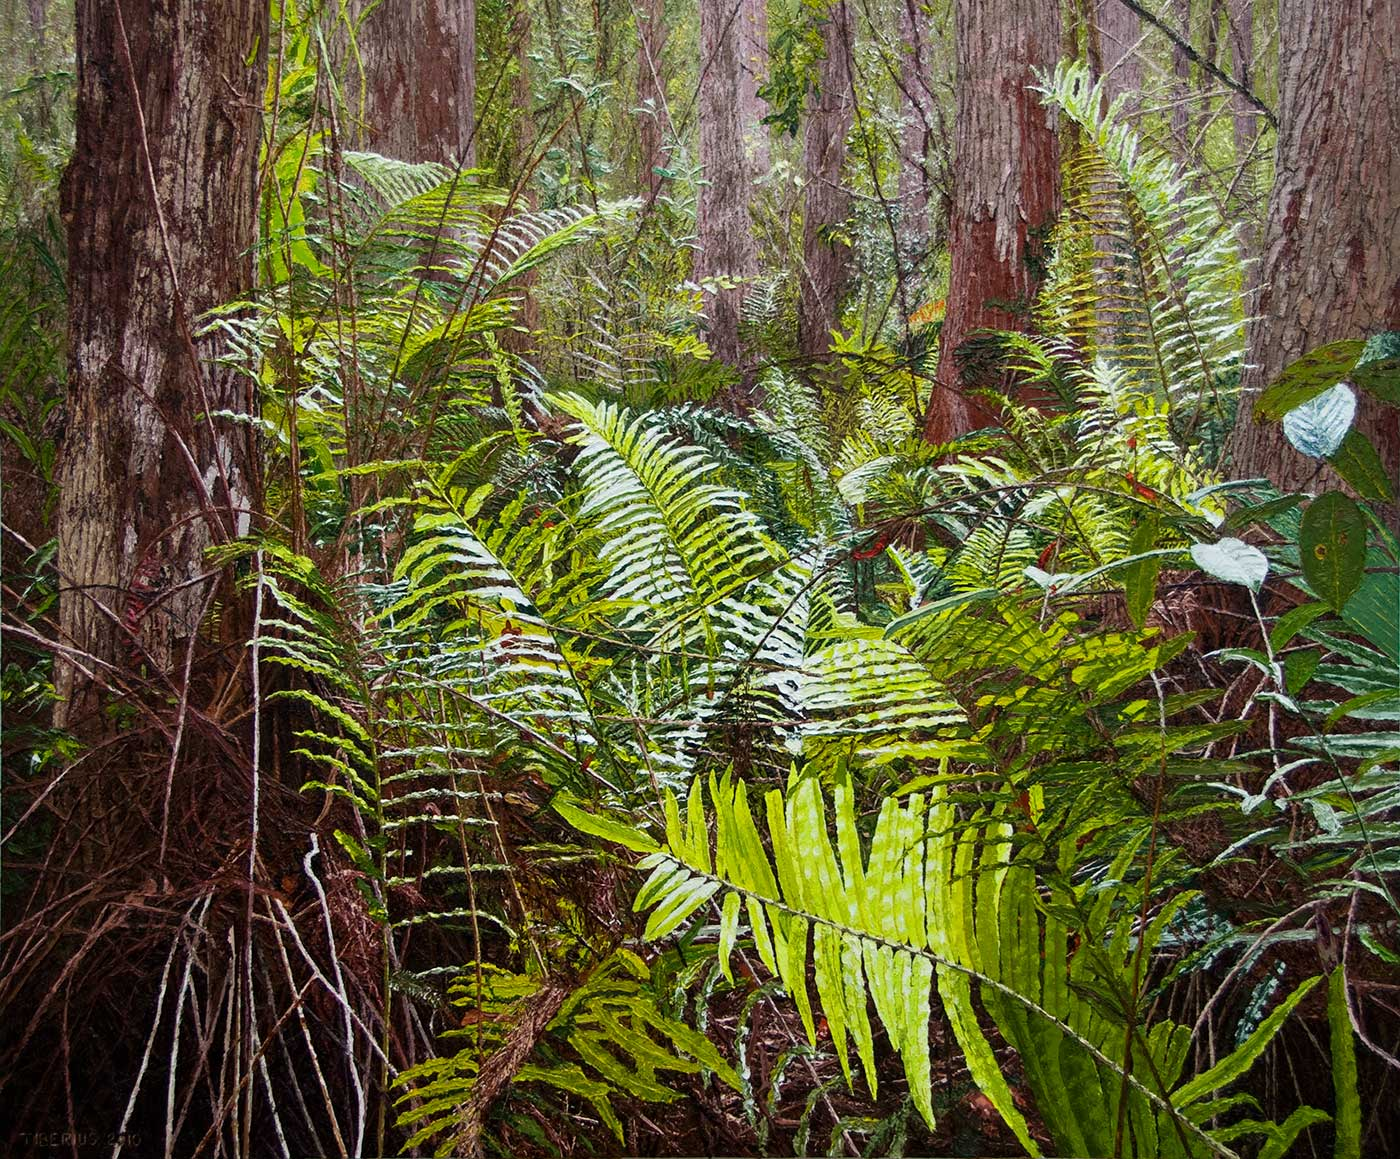 Ferns among the Cypress Trees – Progression